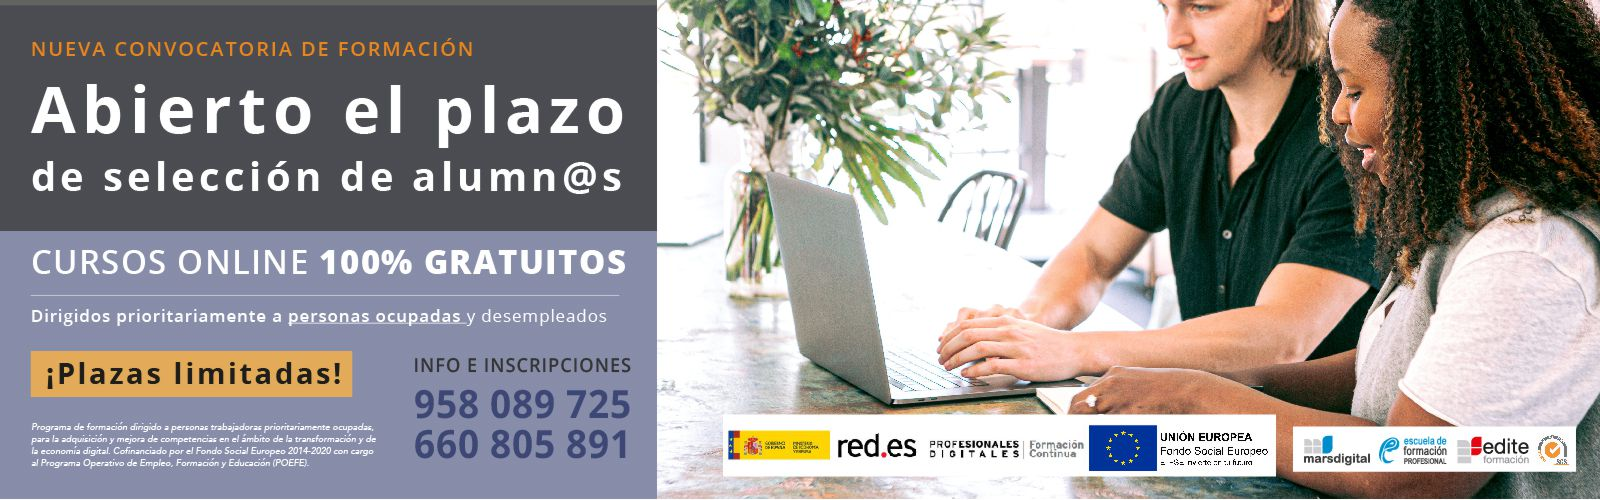 Convocatoria de cursos red.es 2019